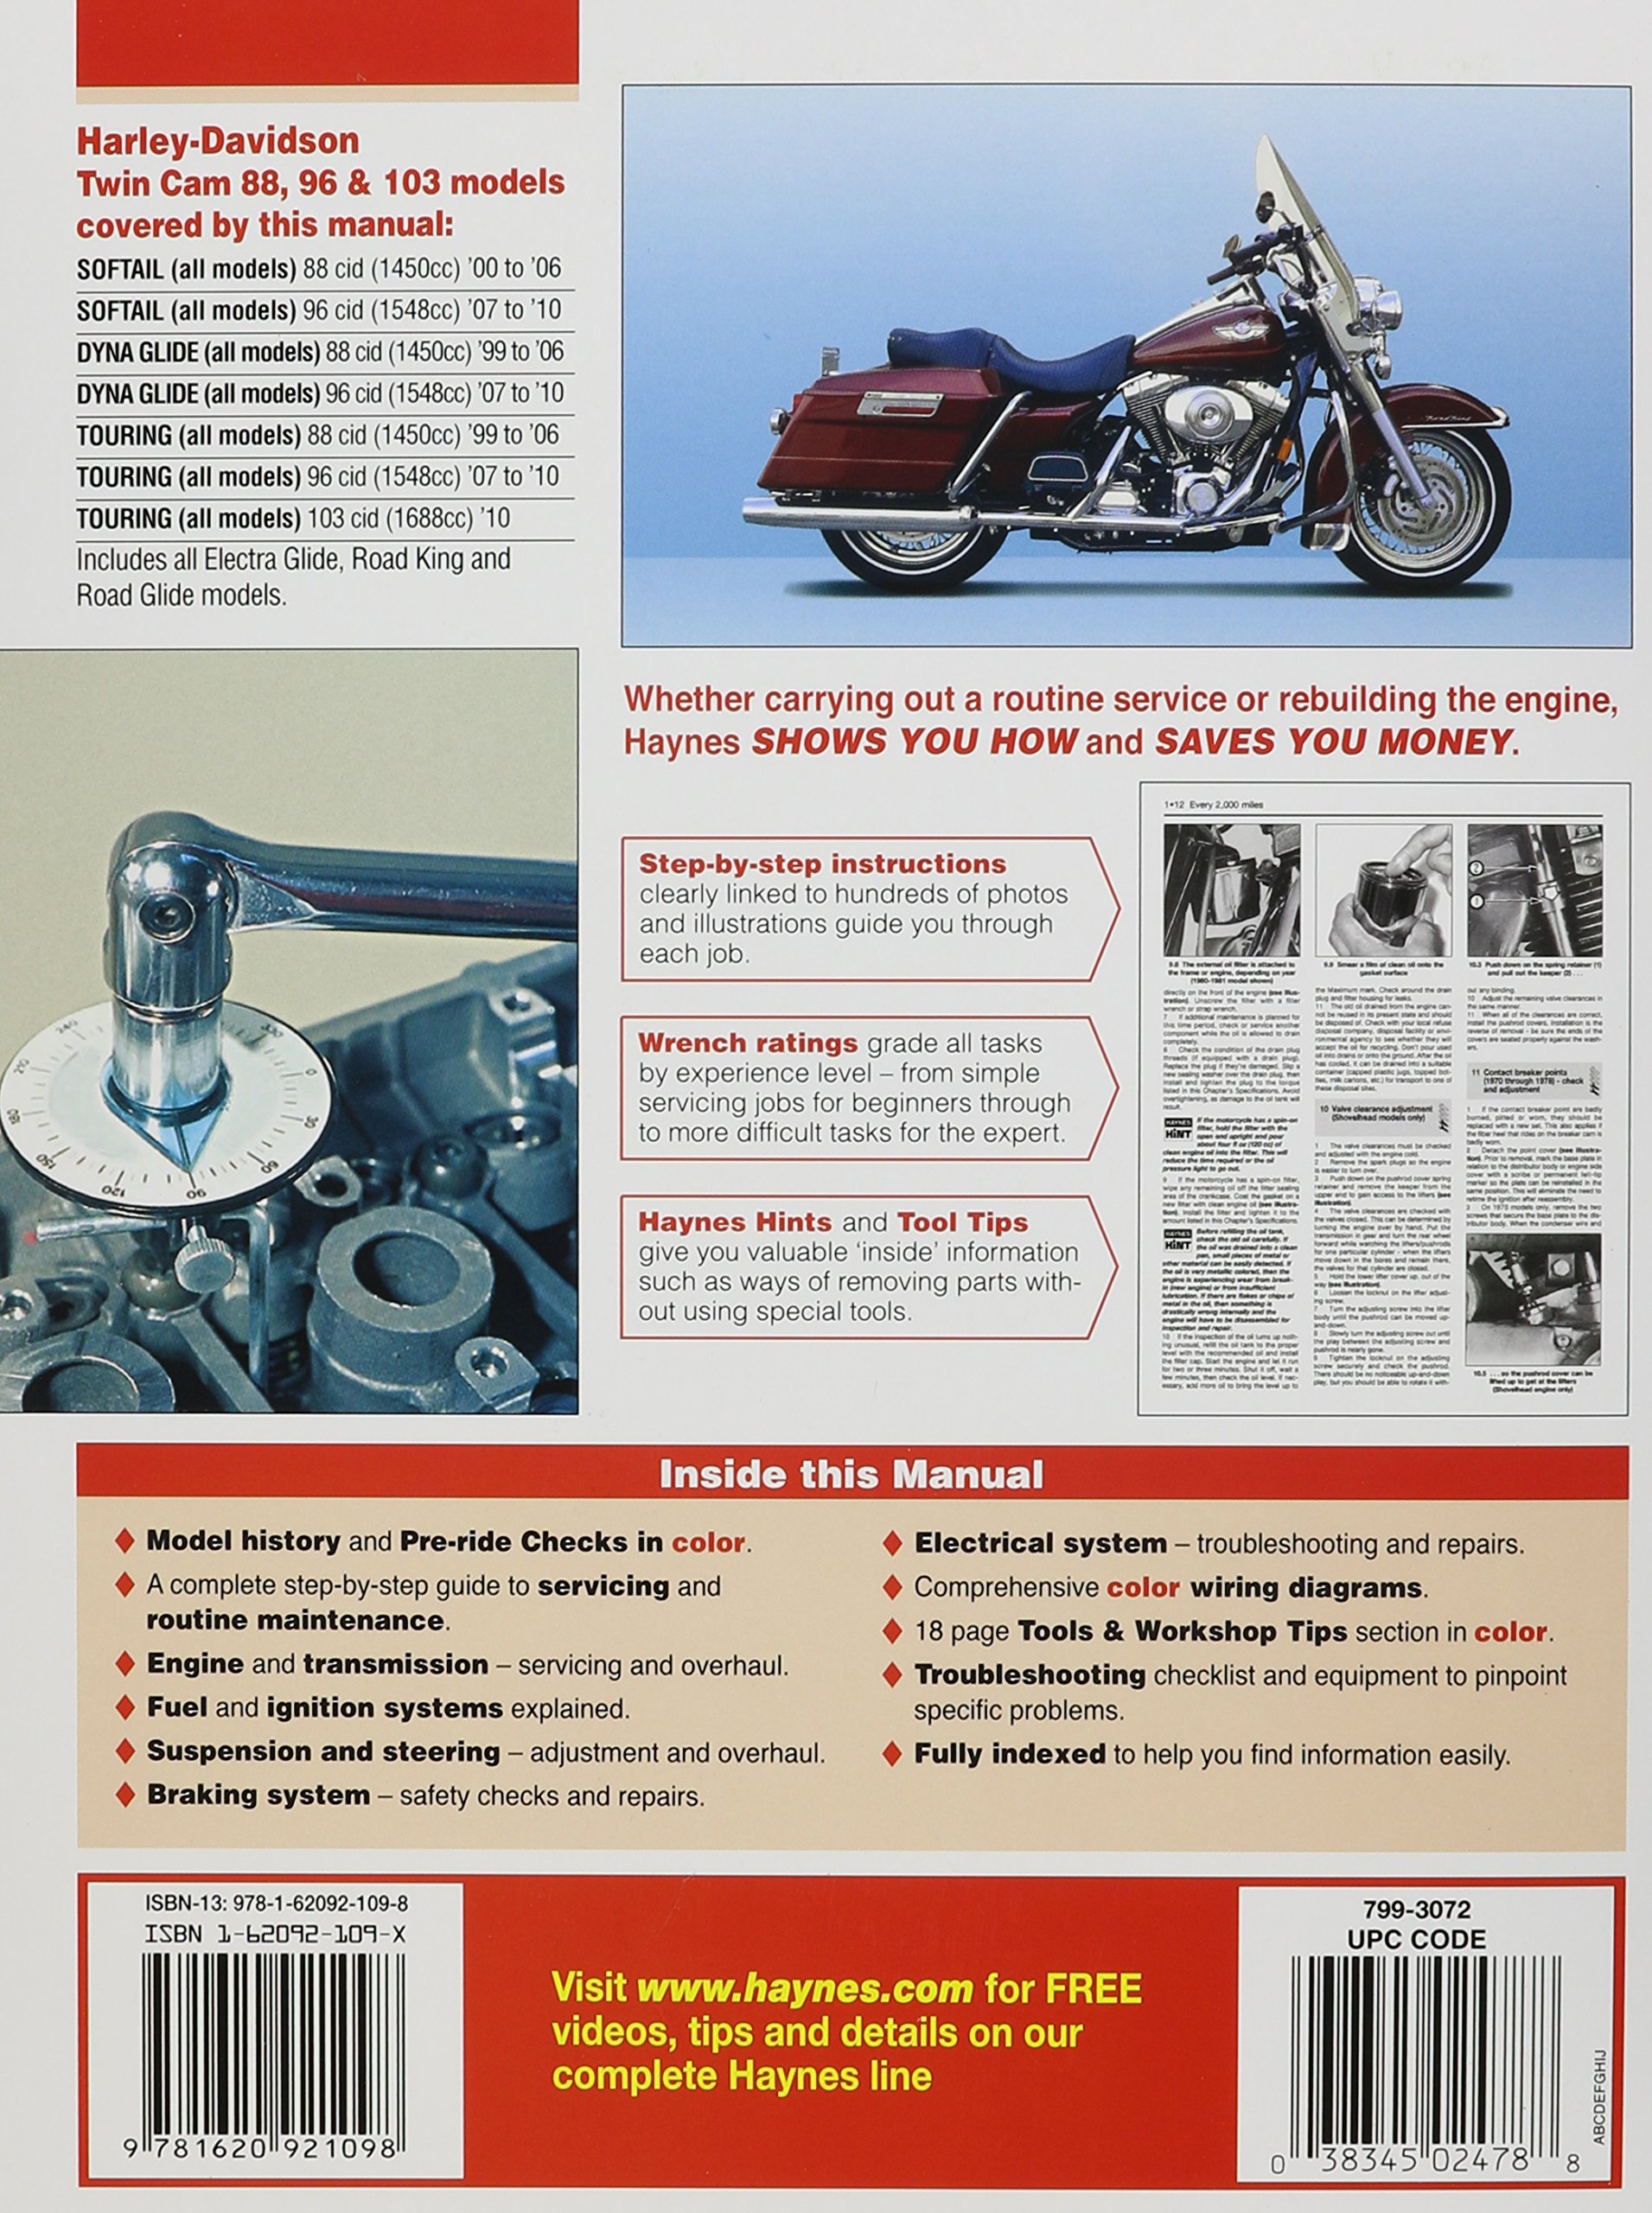 Harley Davidson Twin Cam 88 96 103 Models 99 10 Haynes Repair Wiring Diagram 2014 Manual Service Editors Of Manuals